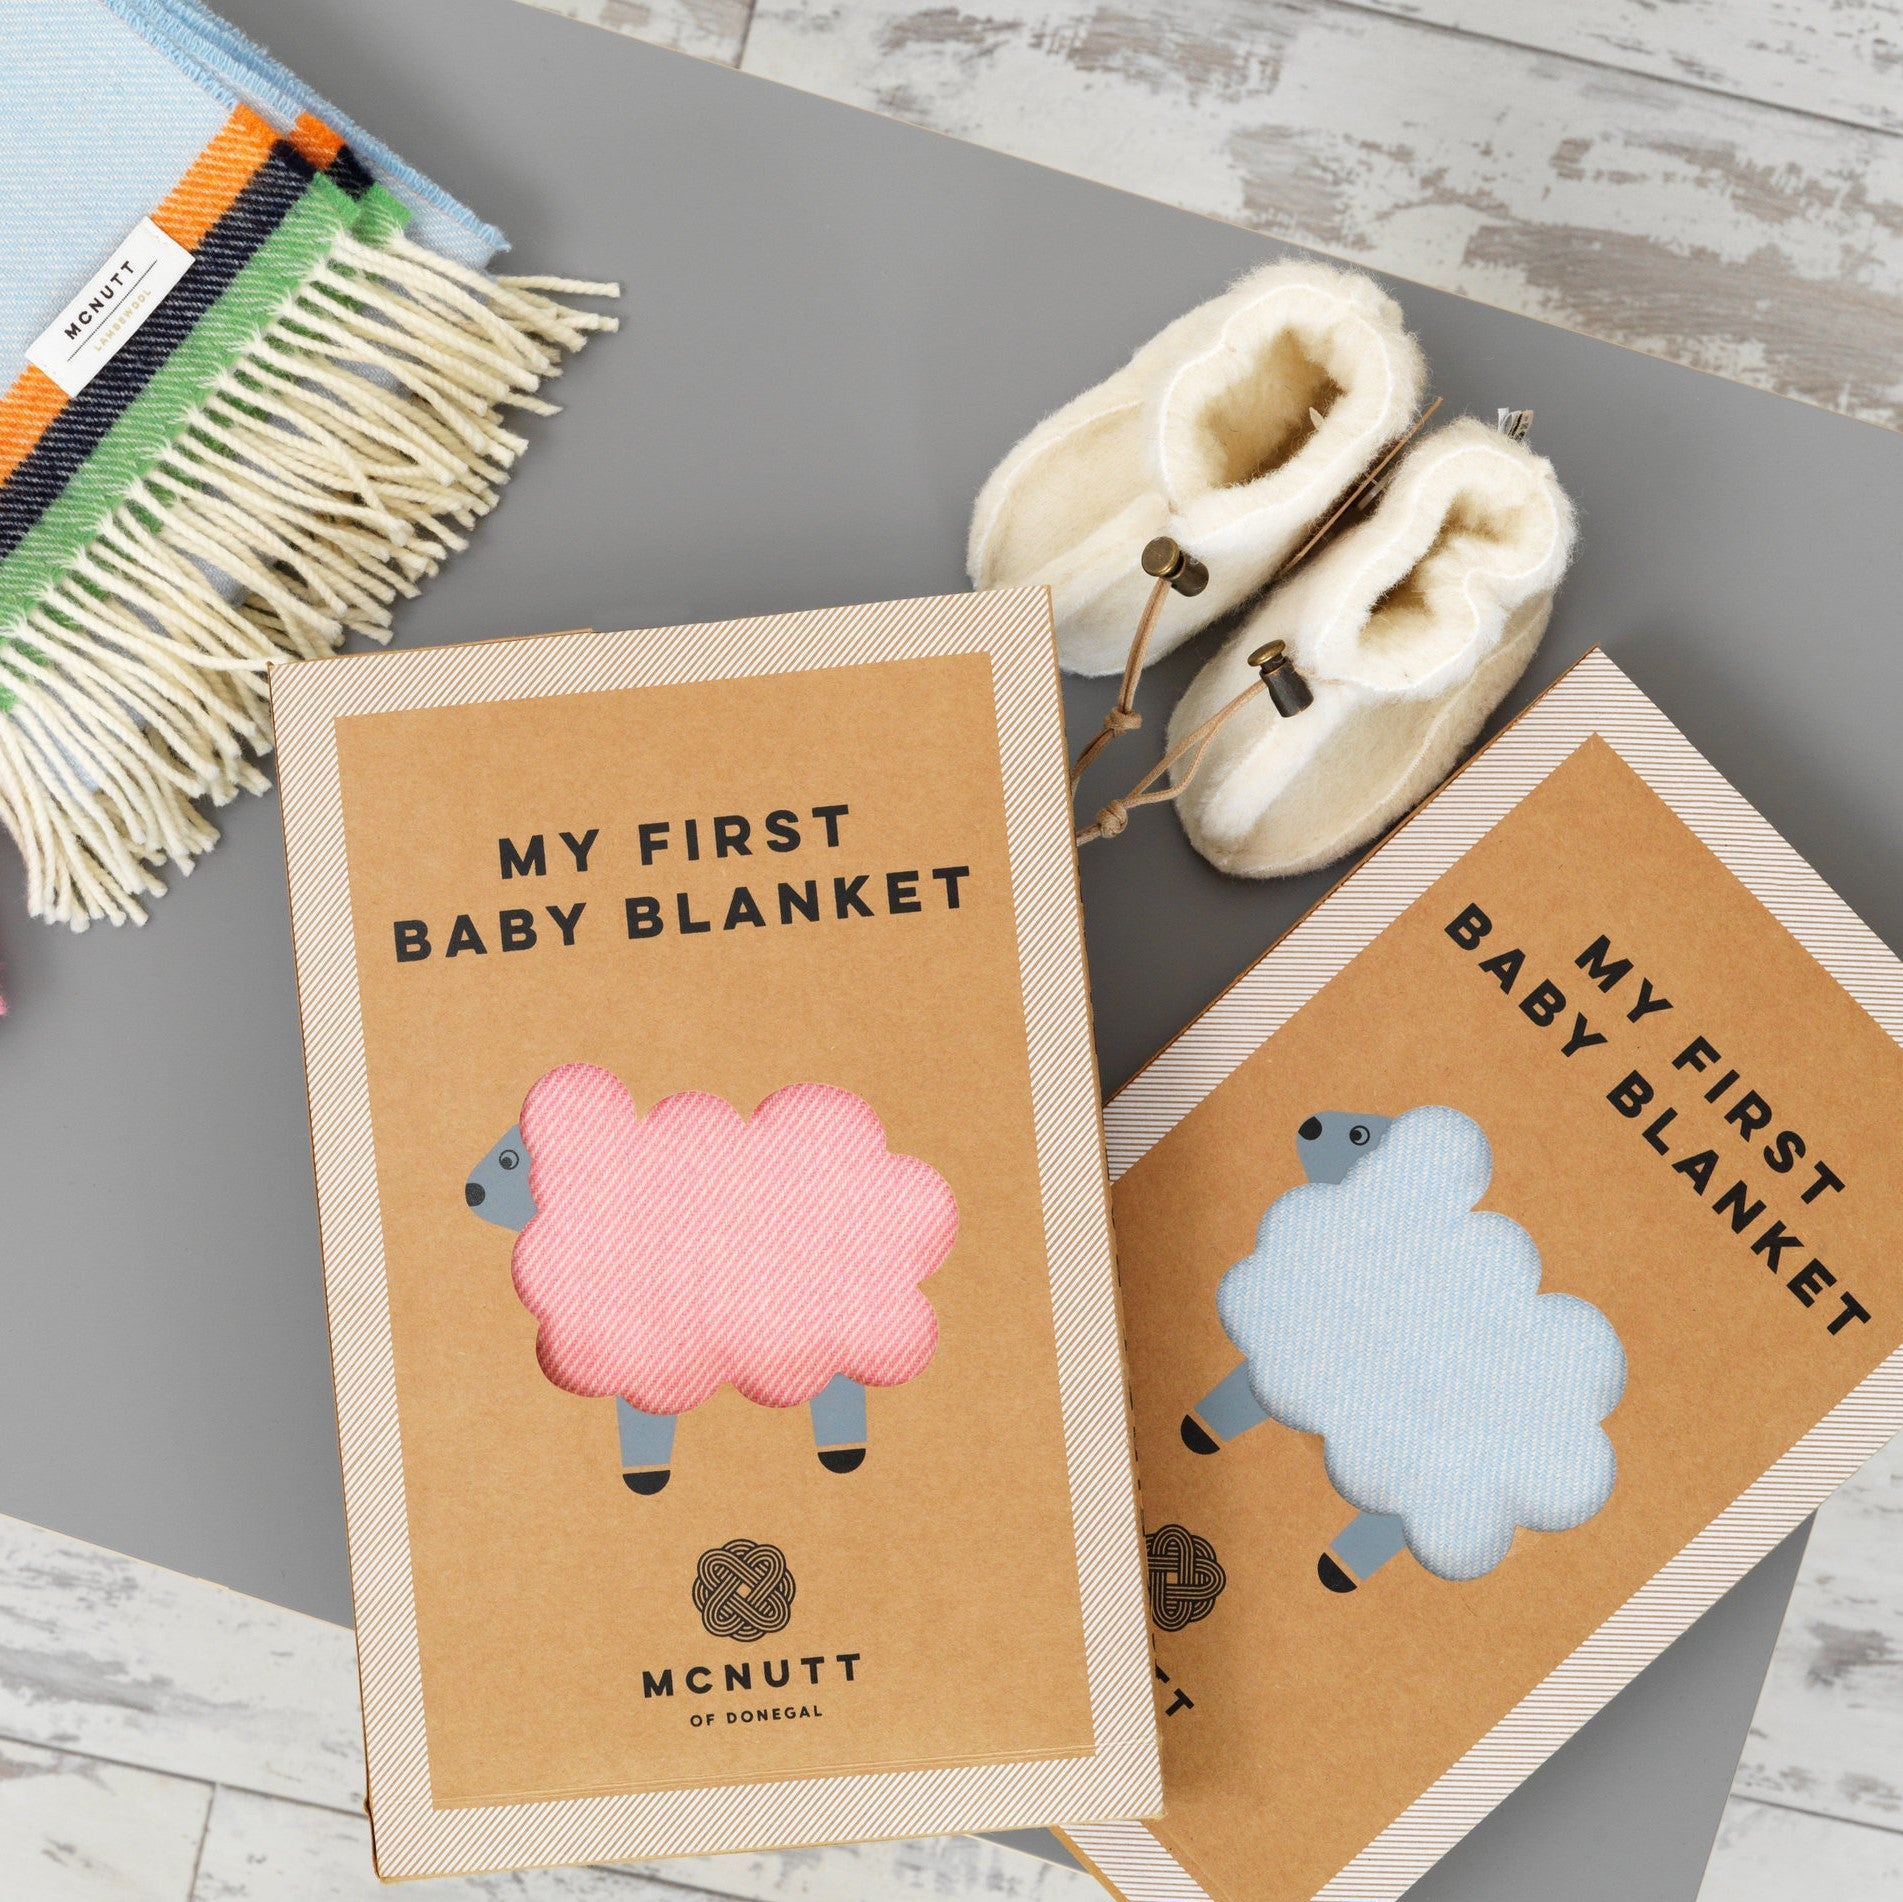 McNUTT OF DONEGAL | Lambswool Baby Blanket & Box | Pink Flamingo